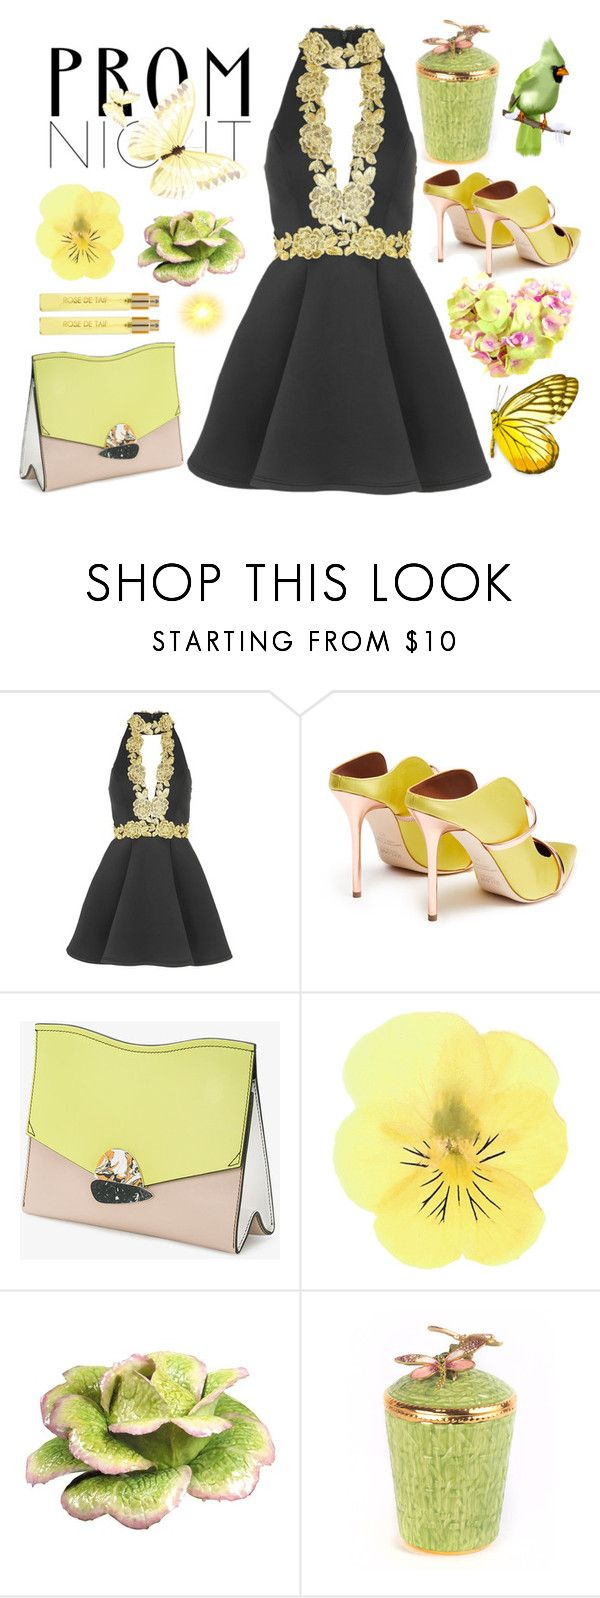 """Prom Night"" by bysc ❤ liked on Polyvore featuring Topshop, Malone Souliers, Proenza Schouler, Jay Strongwater and Perris Monte Carlo"